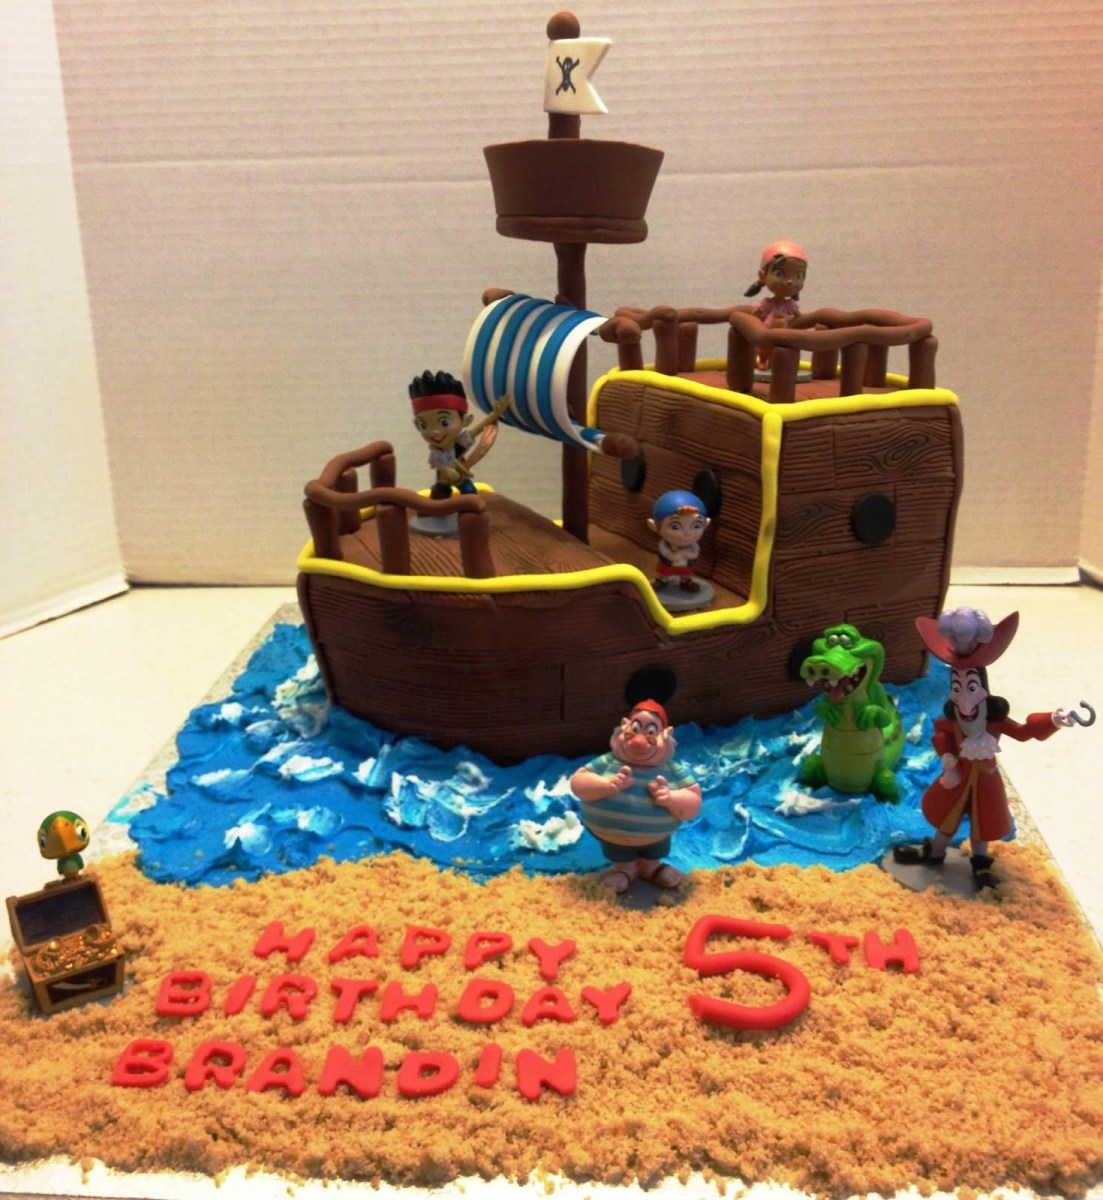 Sensational Pirate Birthday Cake Picture Of Jake And The Neverland Pirates Funny Birthday Cards Online Alyptdamsfinfo